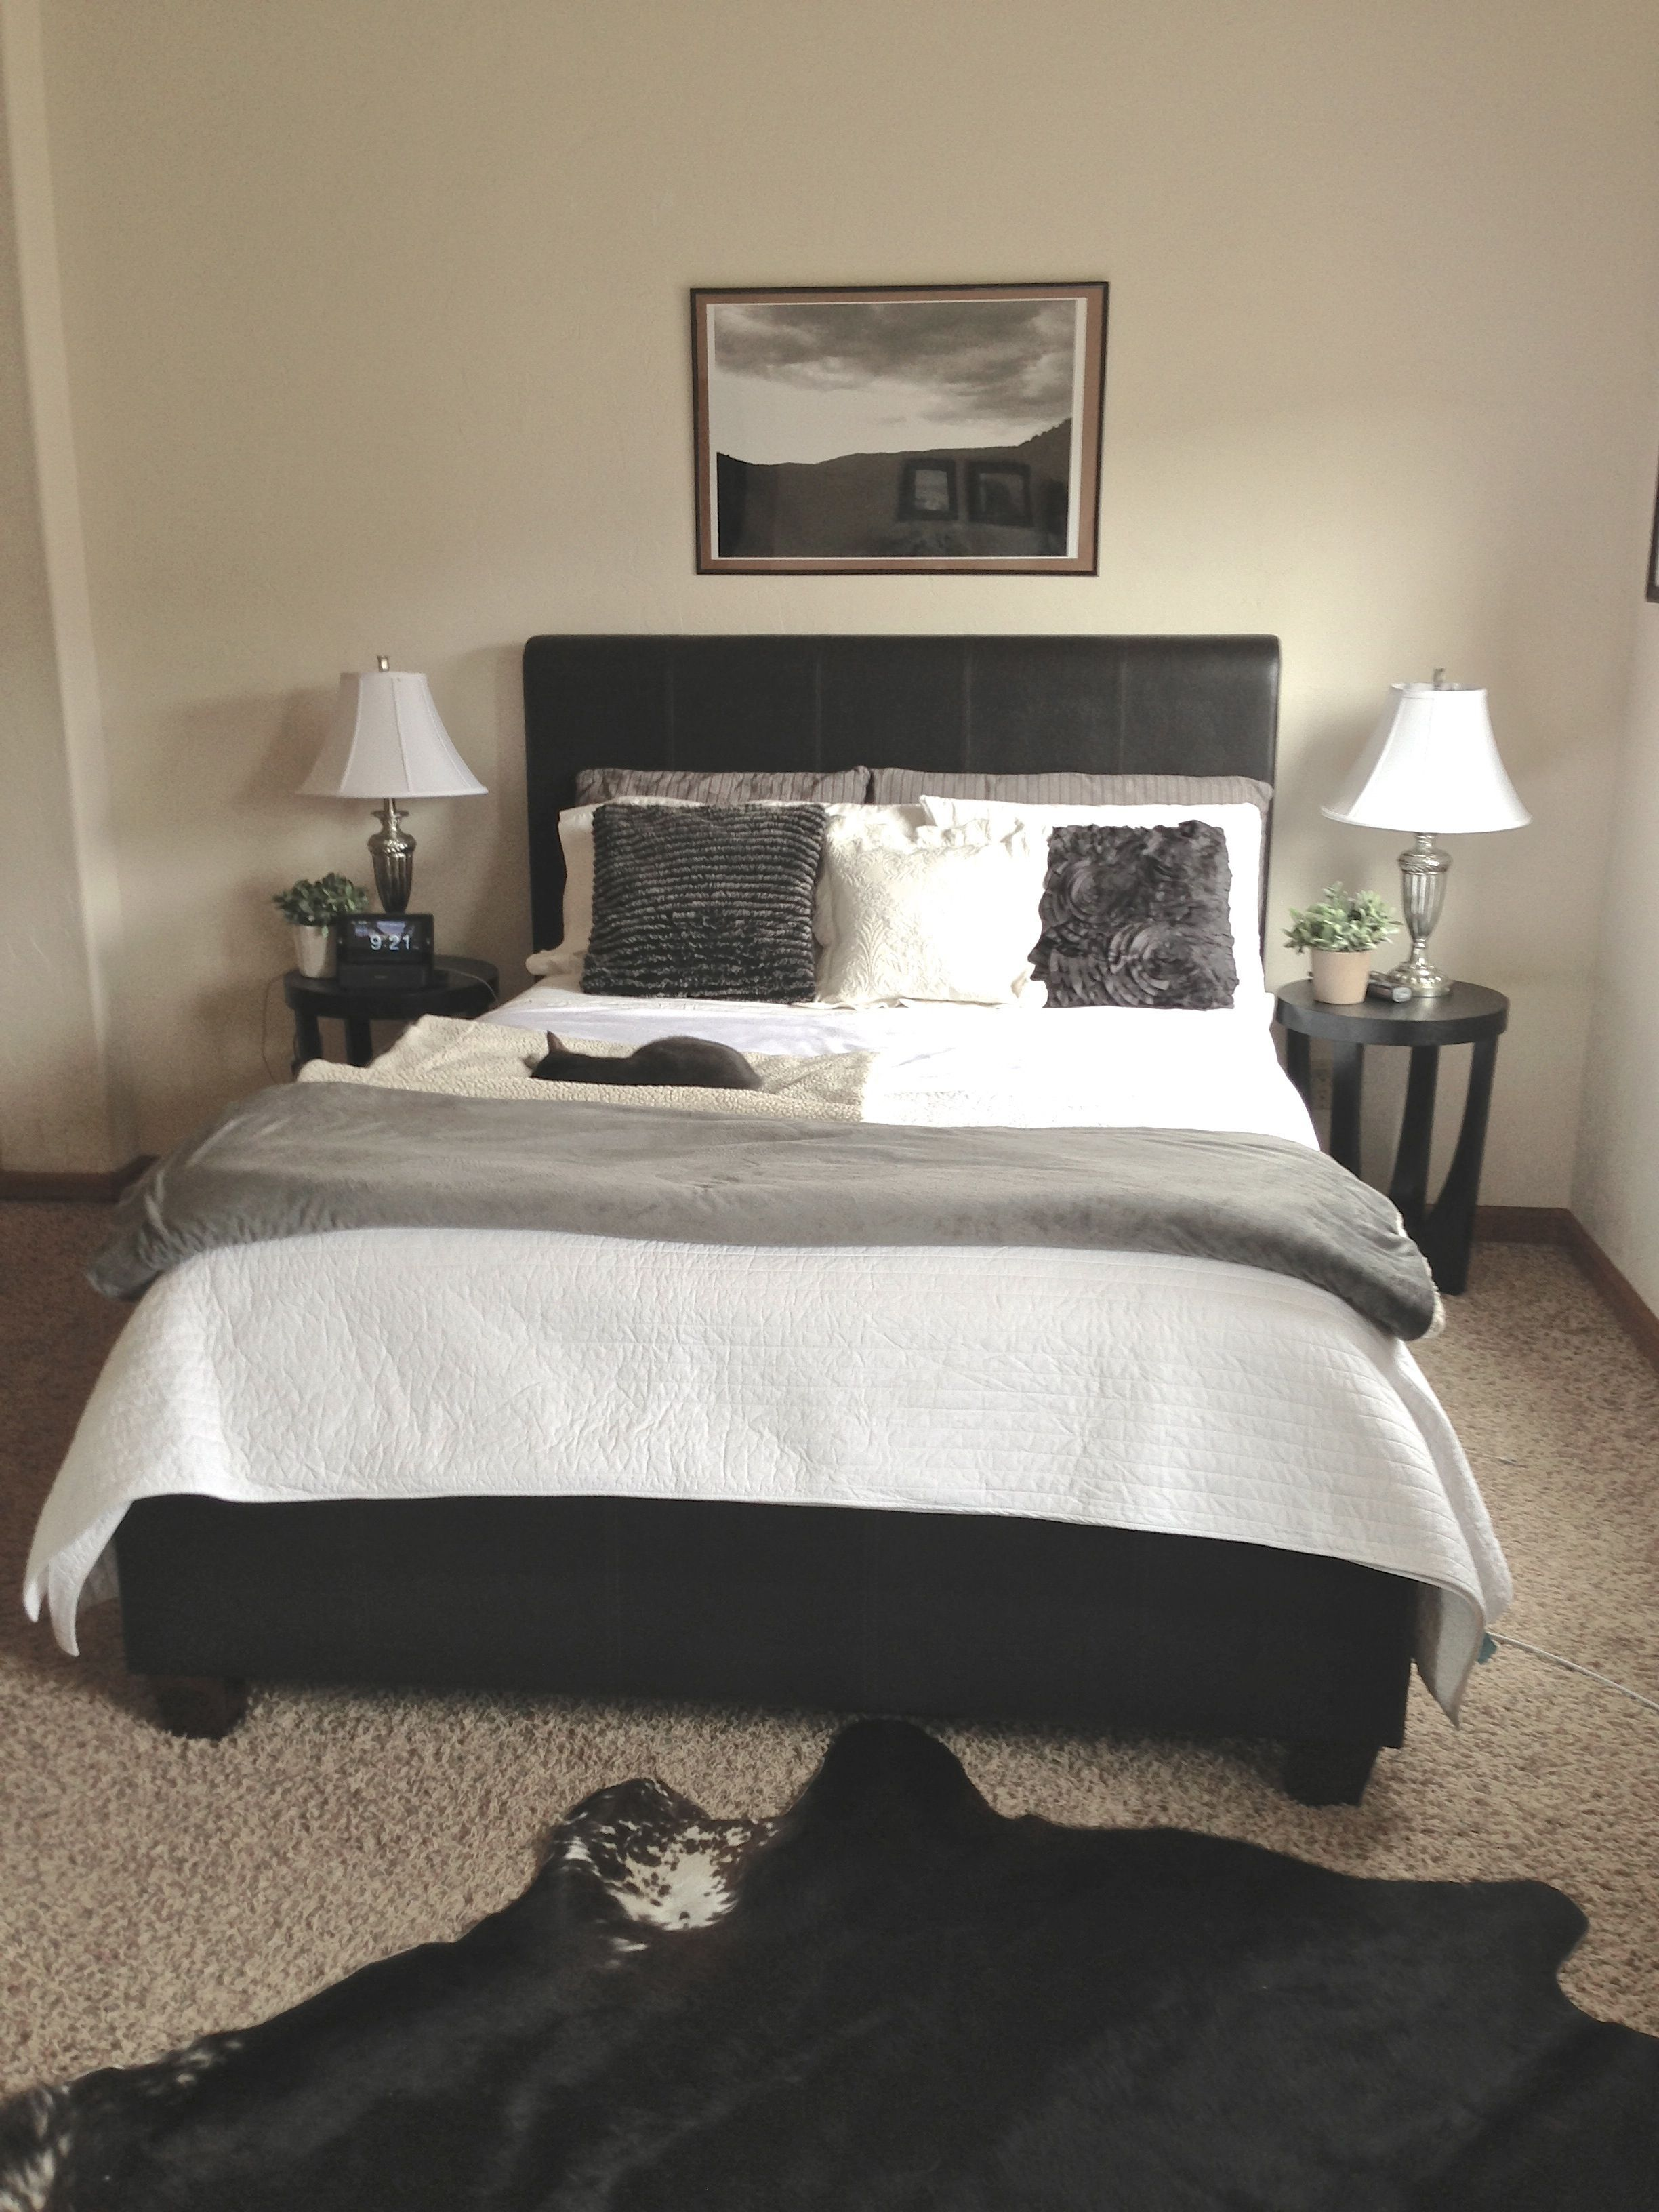 Bedroom color scheme black leather with grey and